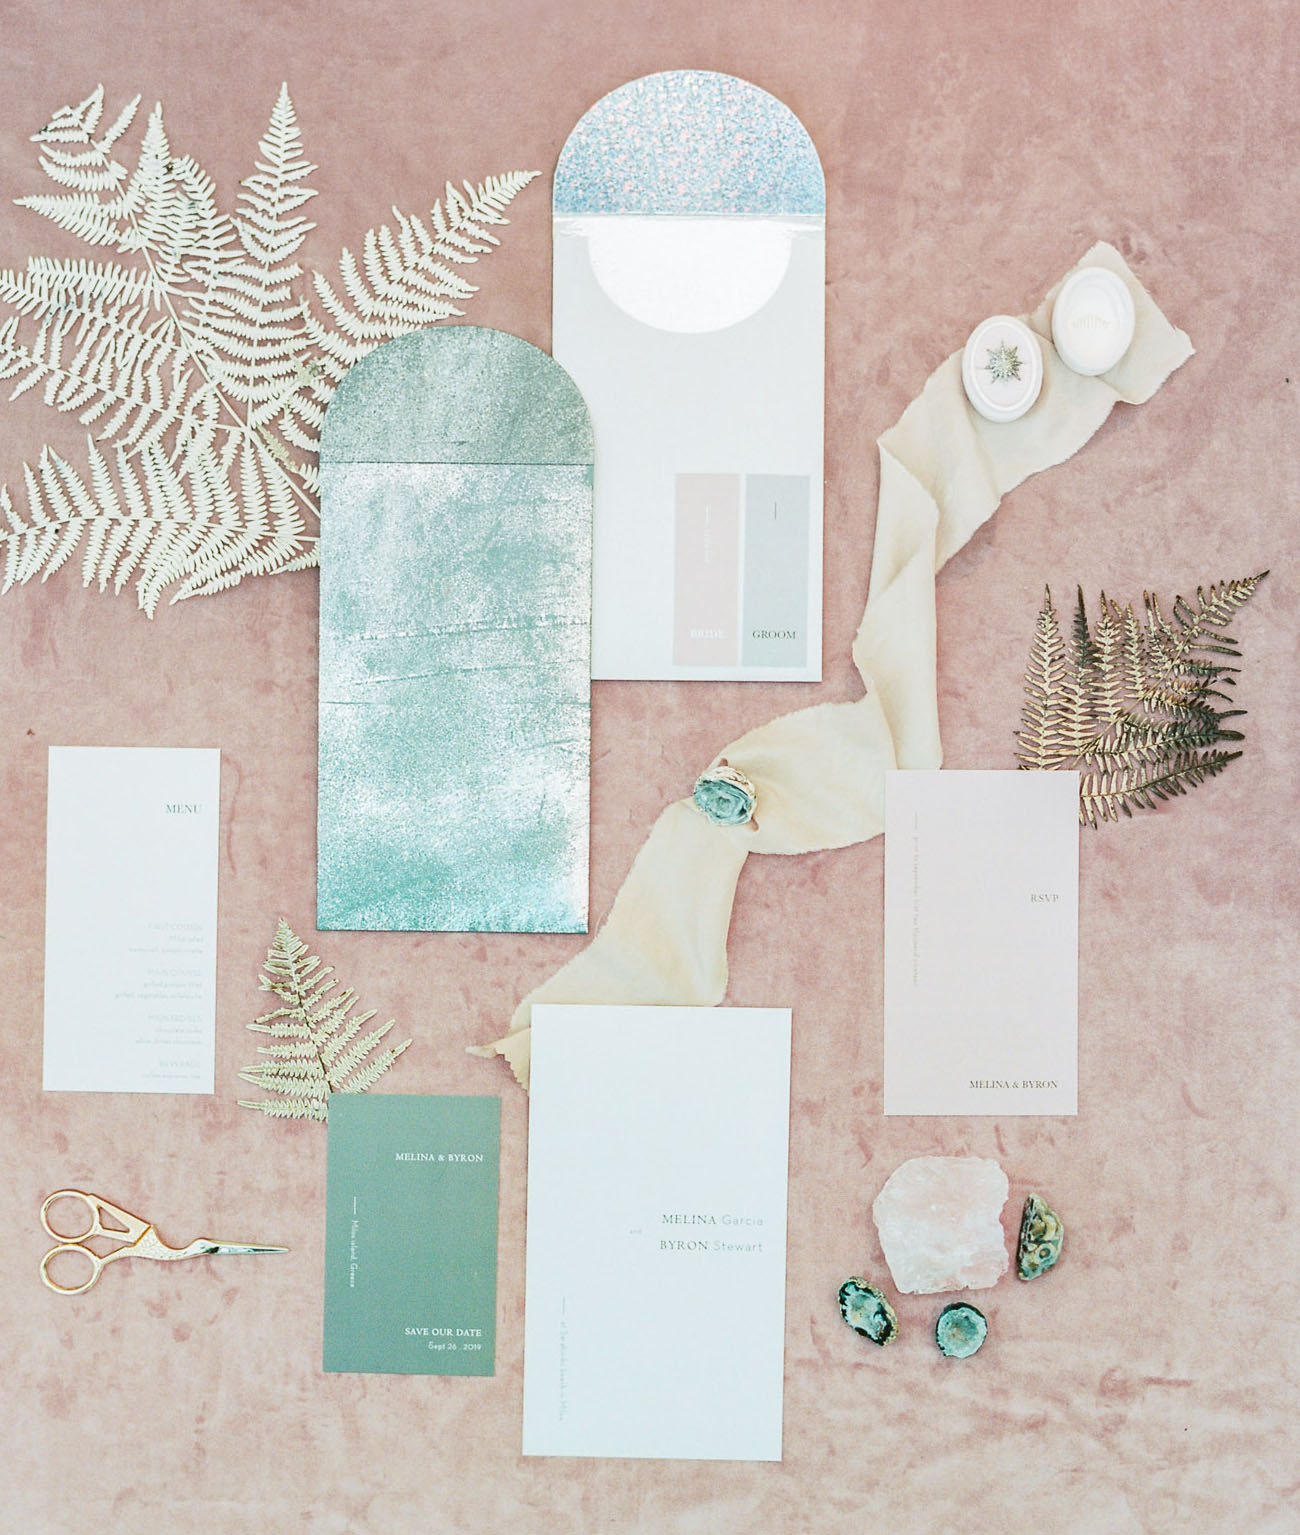 The wedding stationery was inspired by the colors of the Aegean  Sea